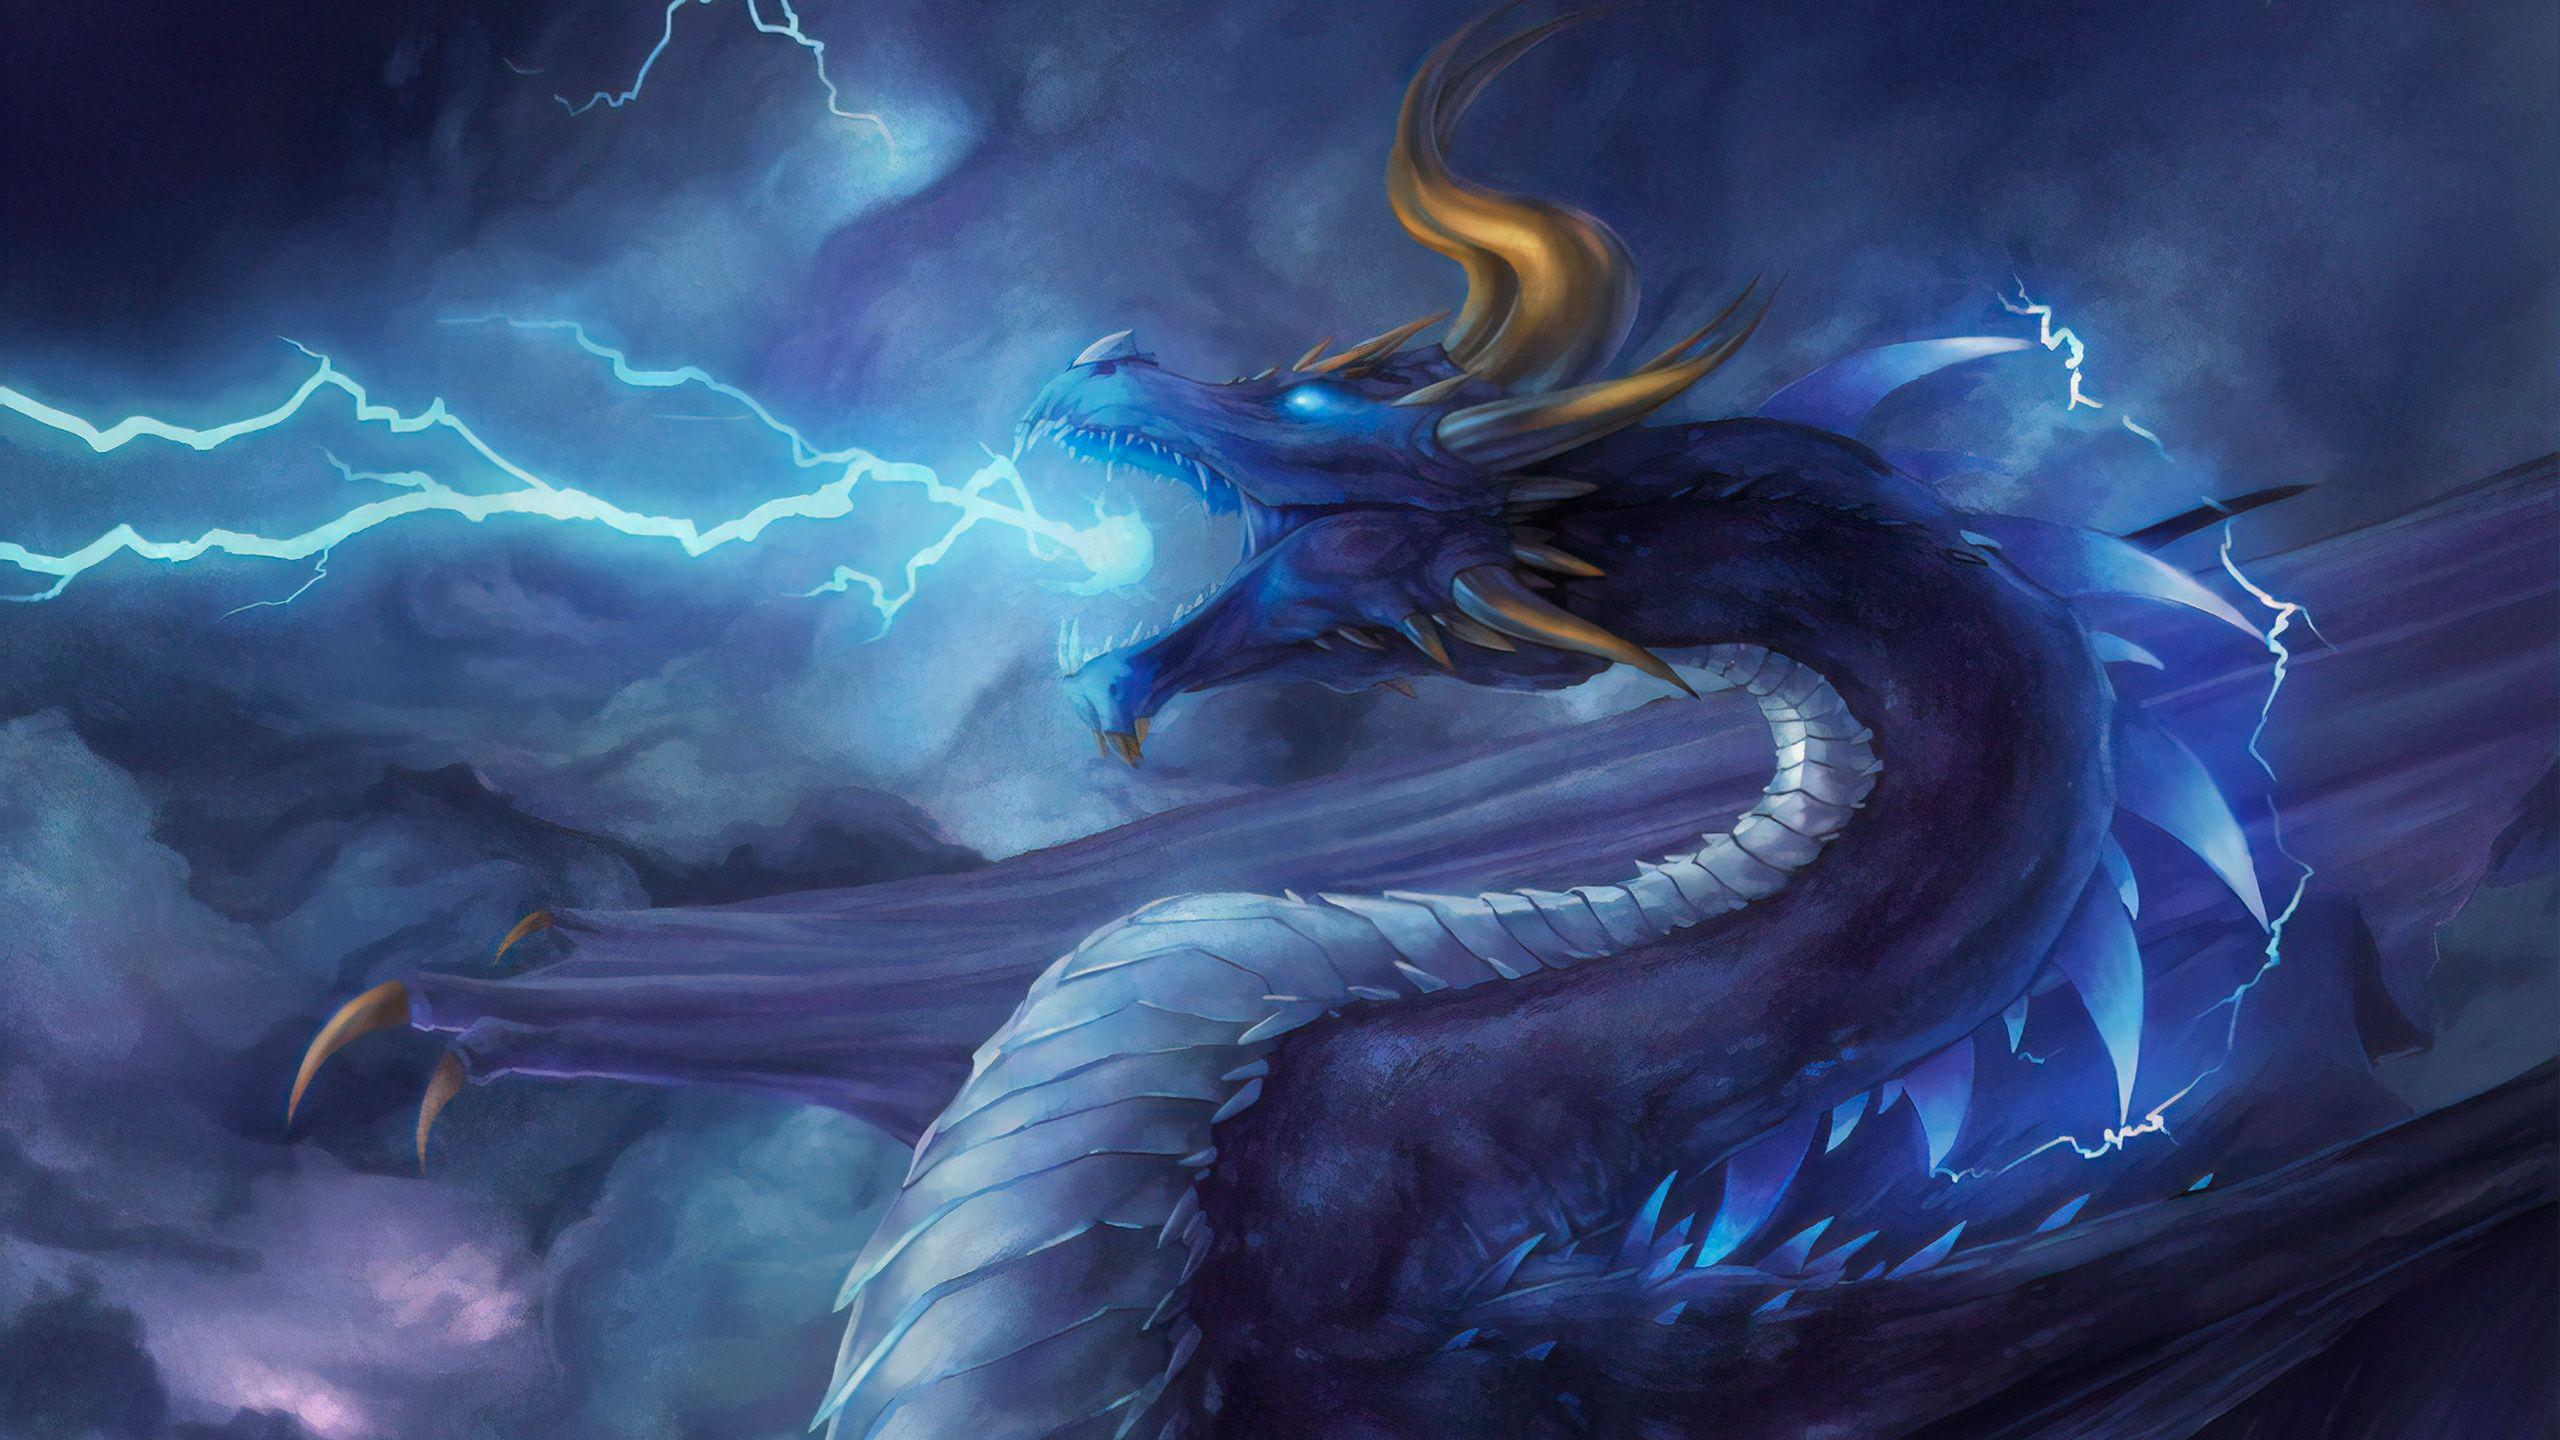 Storm Dragon Wallpapers - Top Free ...